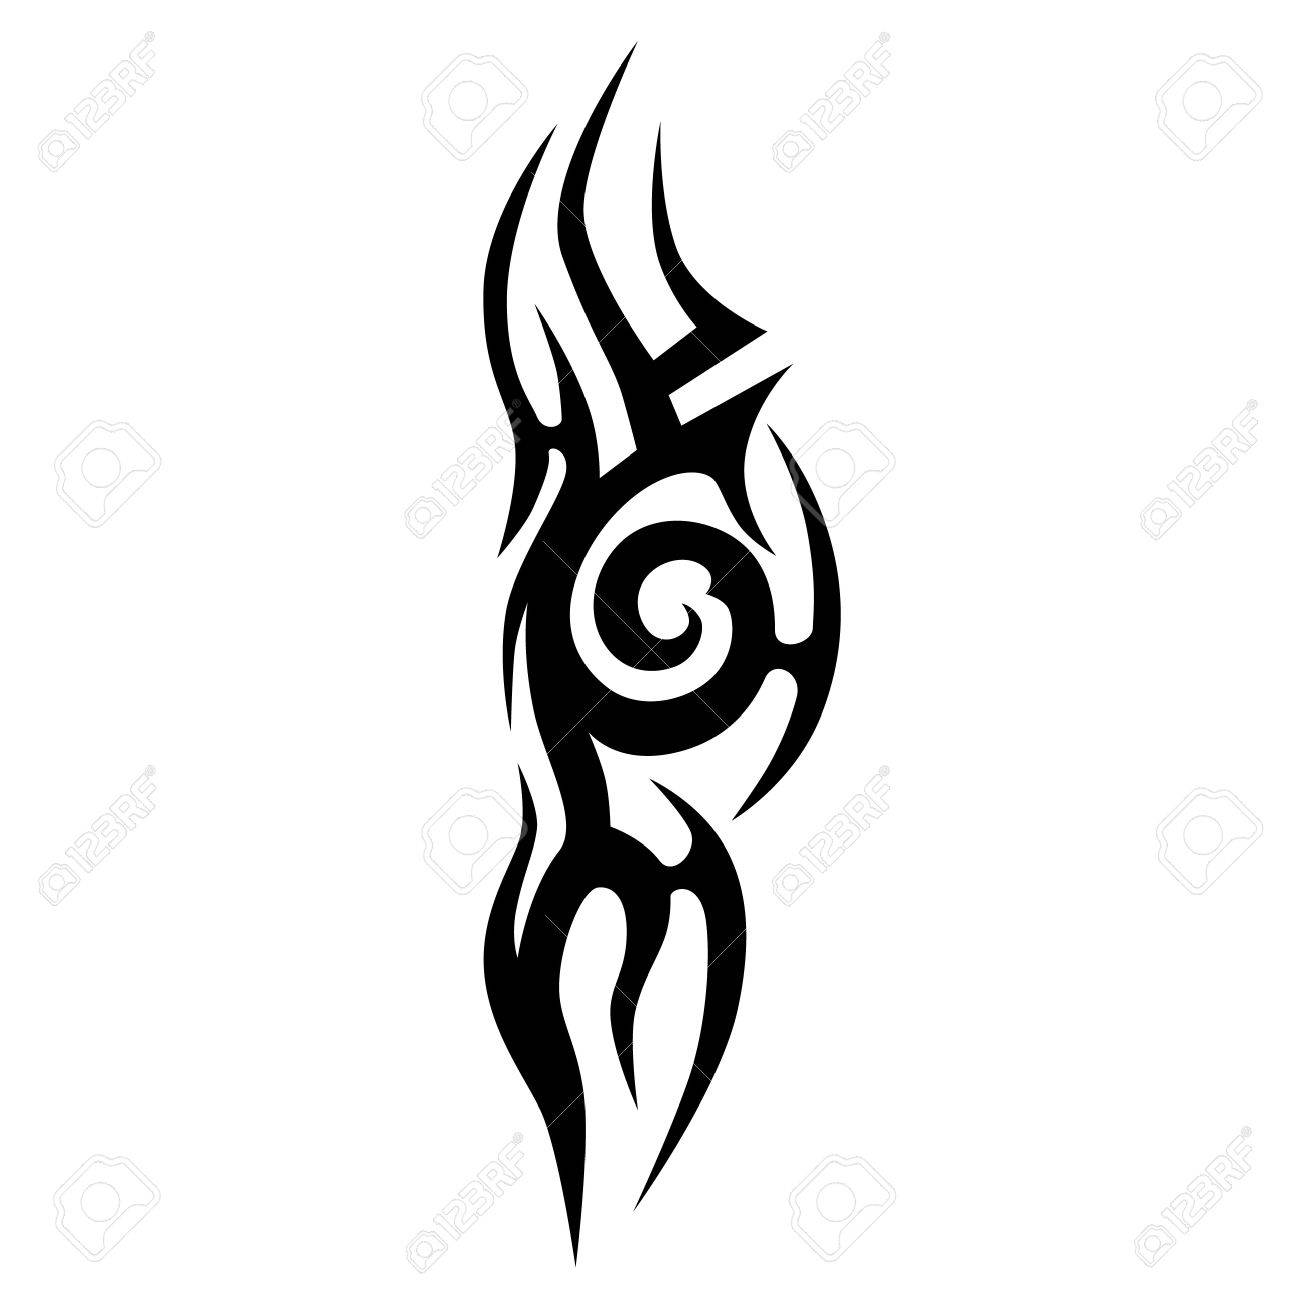 1300x1300 Scroll Tattoo Tribal Vector Designs. Tribal Tattoos. Art Tribal